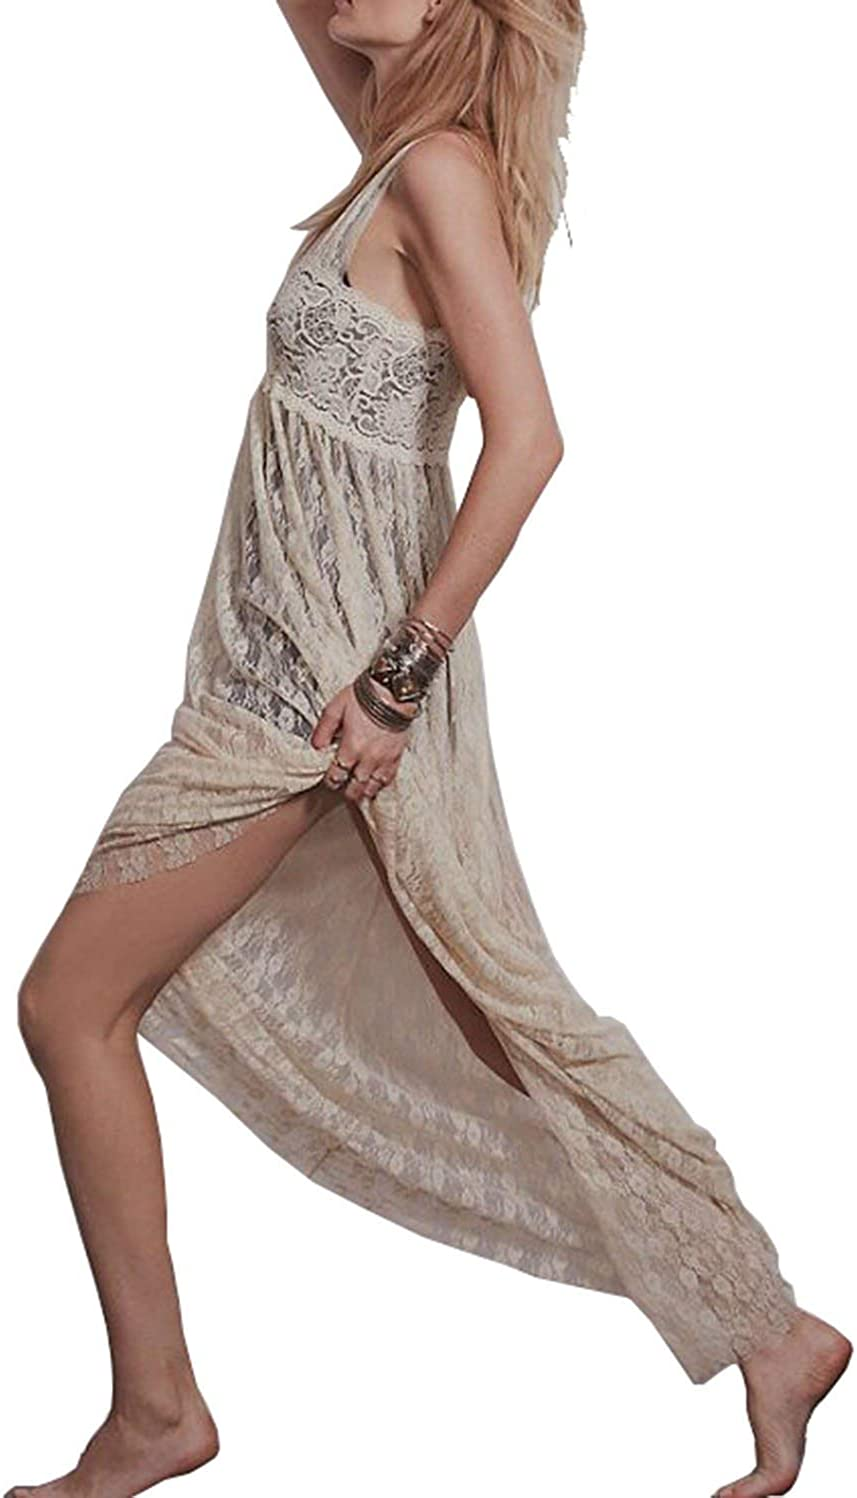 Vivilover Maxi Dresses for Women Lace Babydoll Nightwear Long Gown Lingerie Dress: Clothing